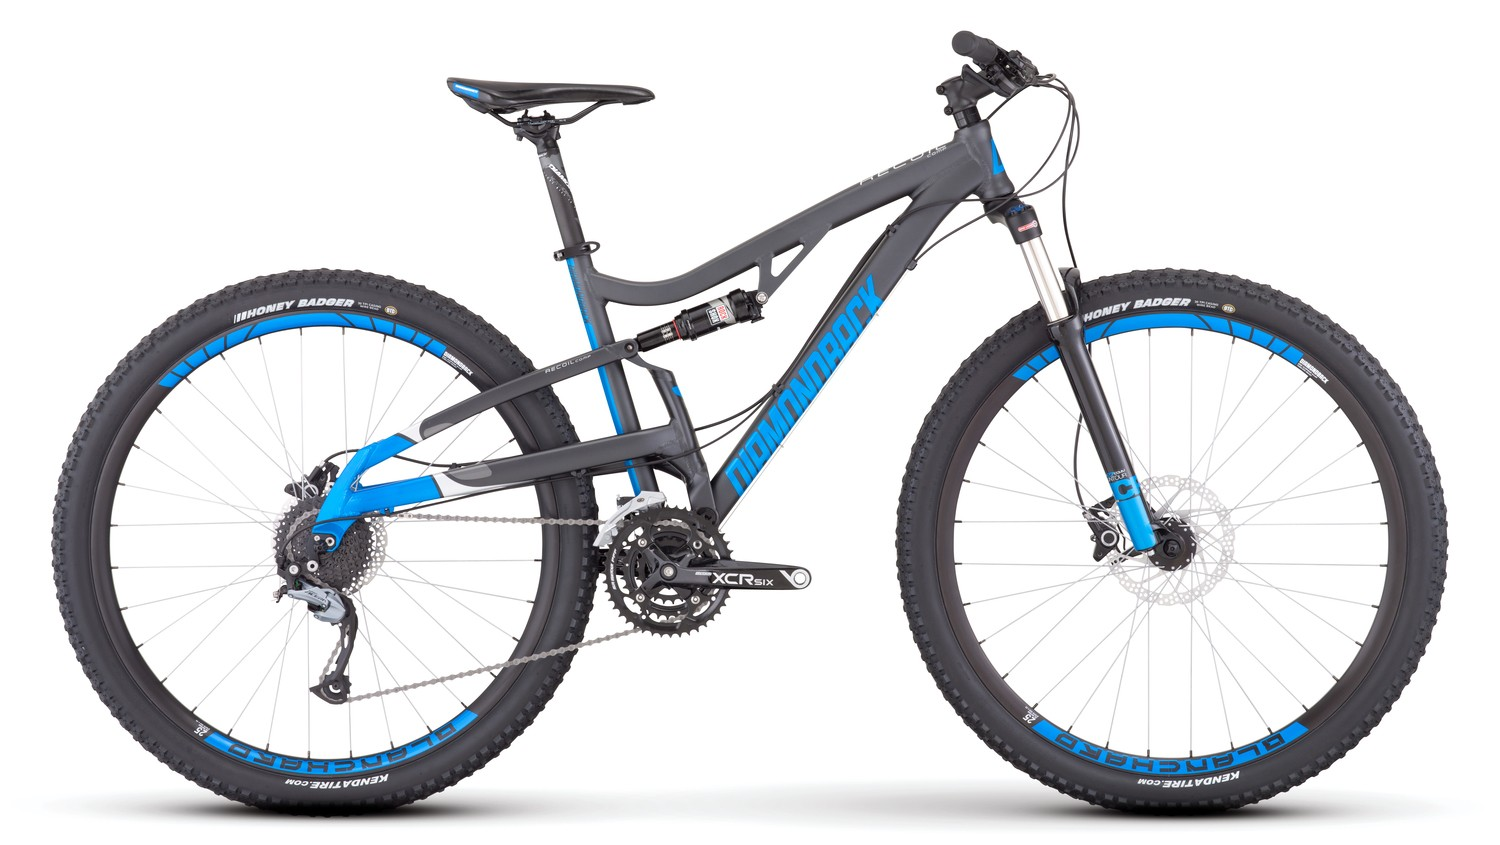 a8220cb060a However, once we step up to the Recoil Comp 29 at $1,000, we're looking at  a functional full suspension mountain bike. The Comp upgrades to a RockShox  ...